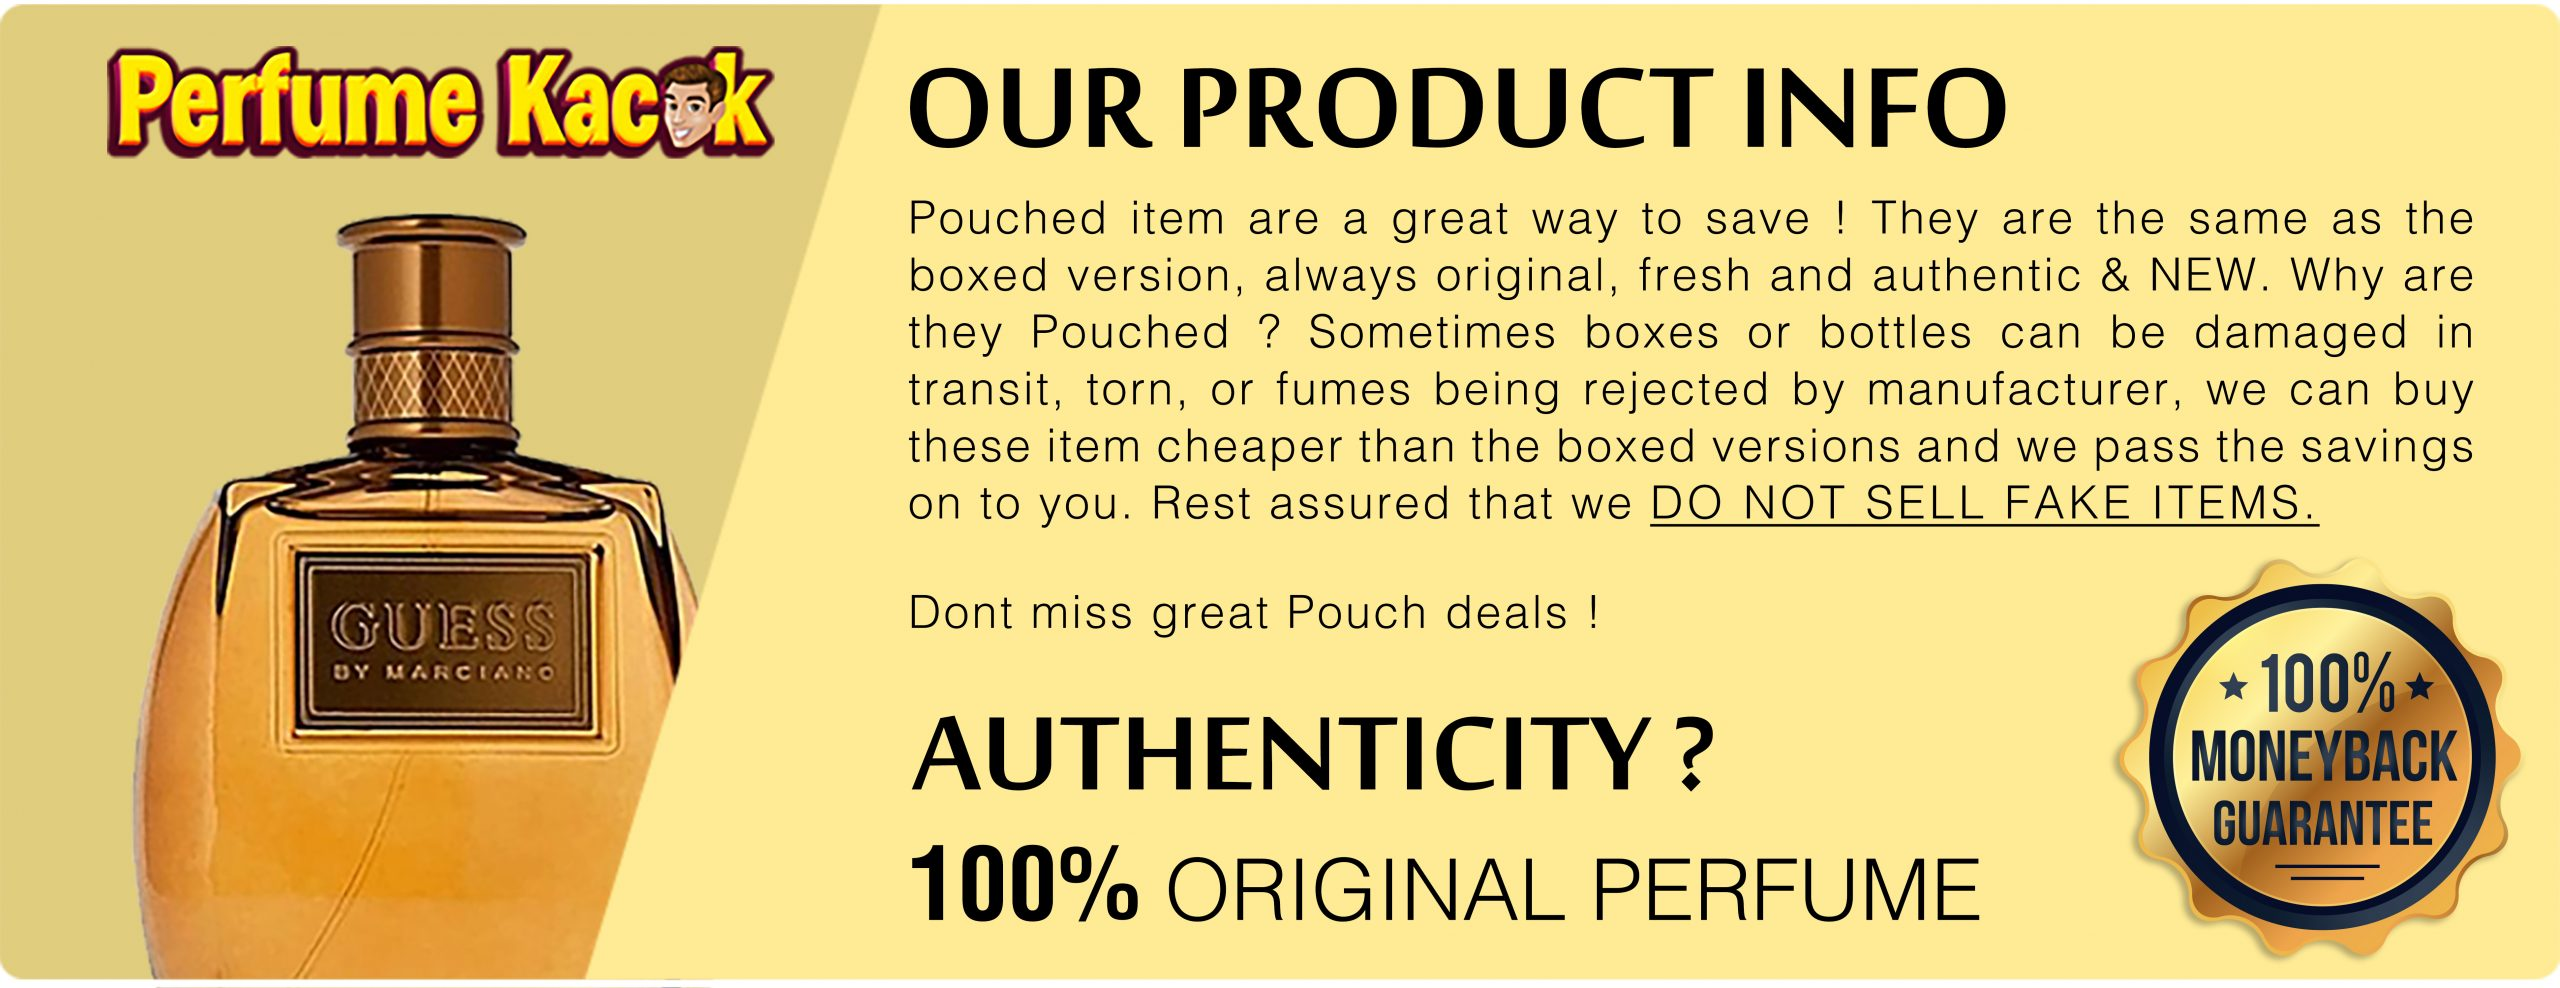 Perfume-Kacak-Product-Info-Pouched-2